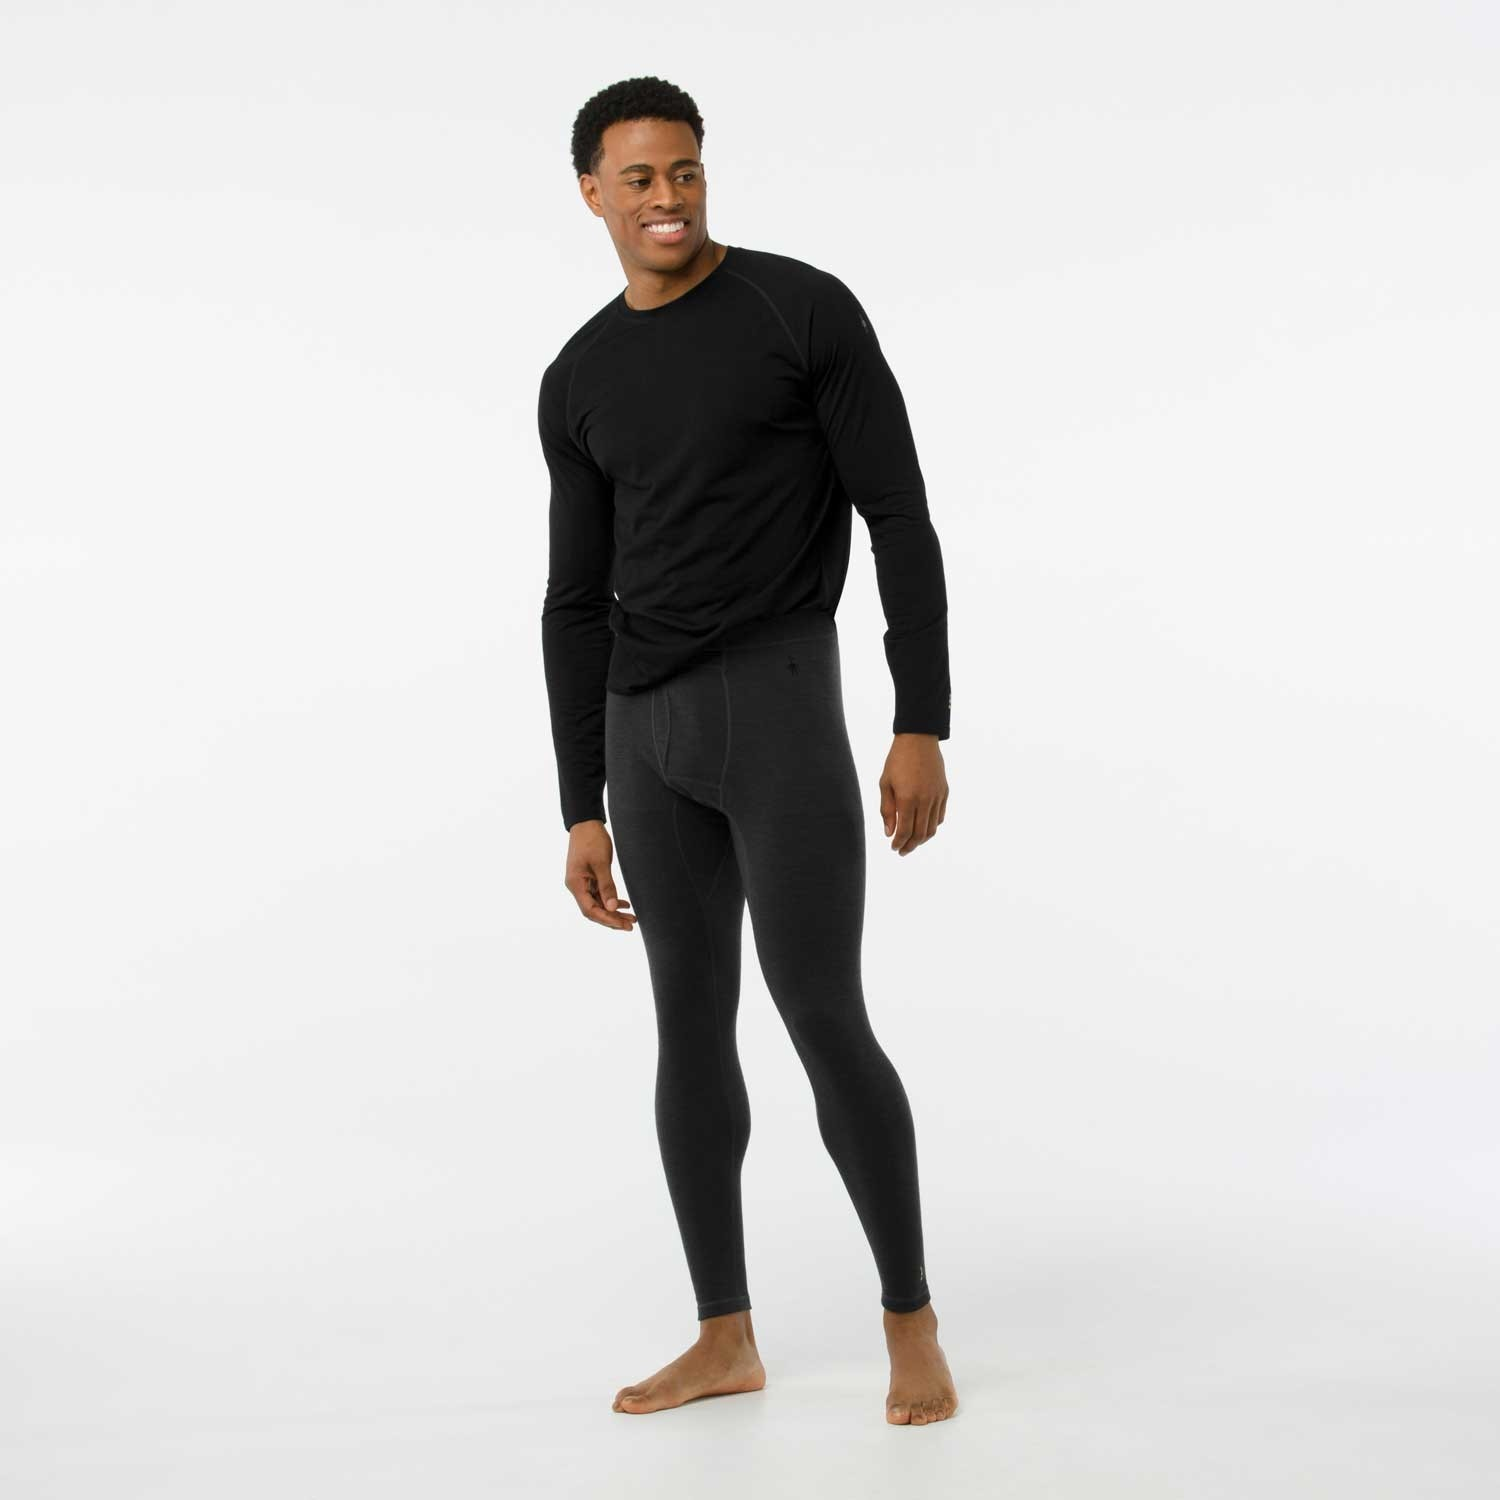 Merino 250 Baselayer Bottom - Men's - Charcoal Heather